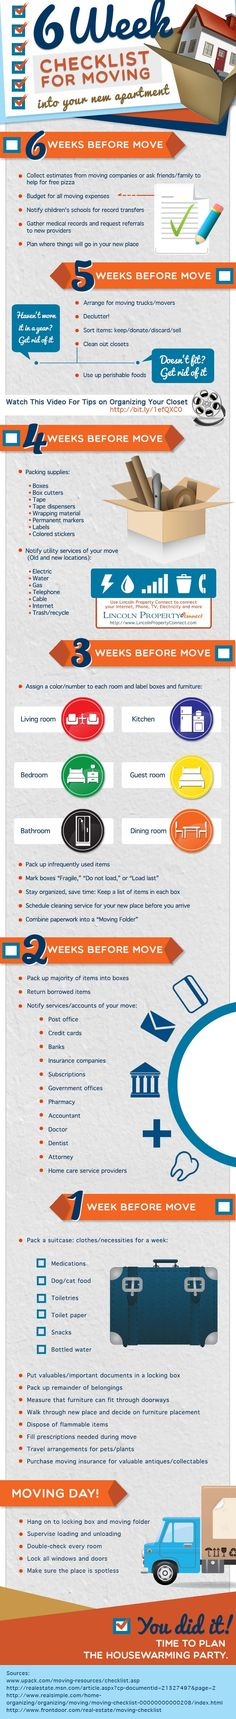 Moving Into A New Apartment Download This Checklist Of Things To